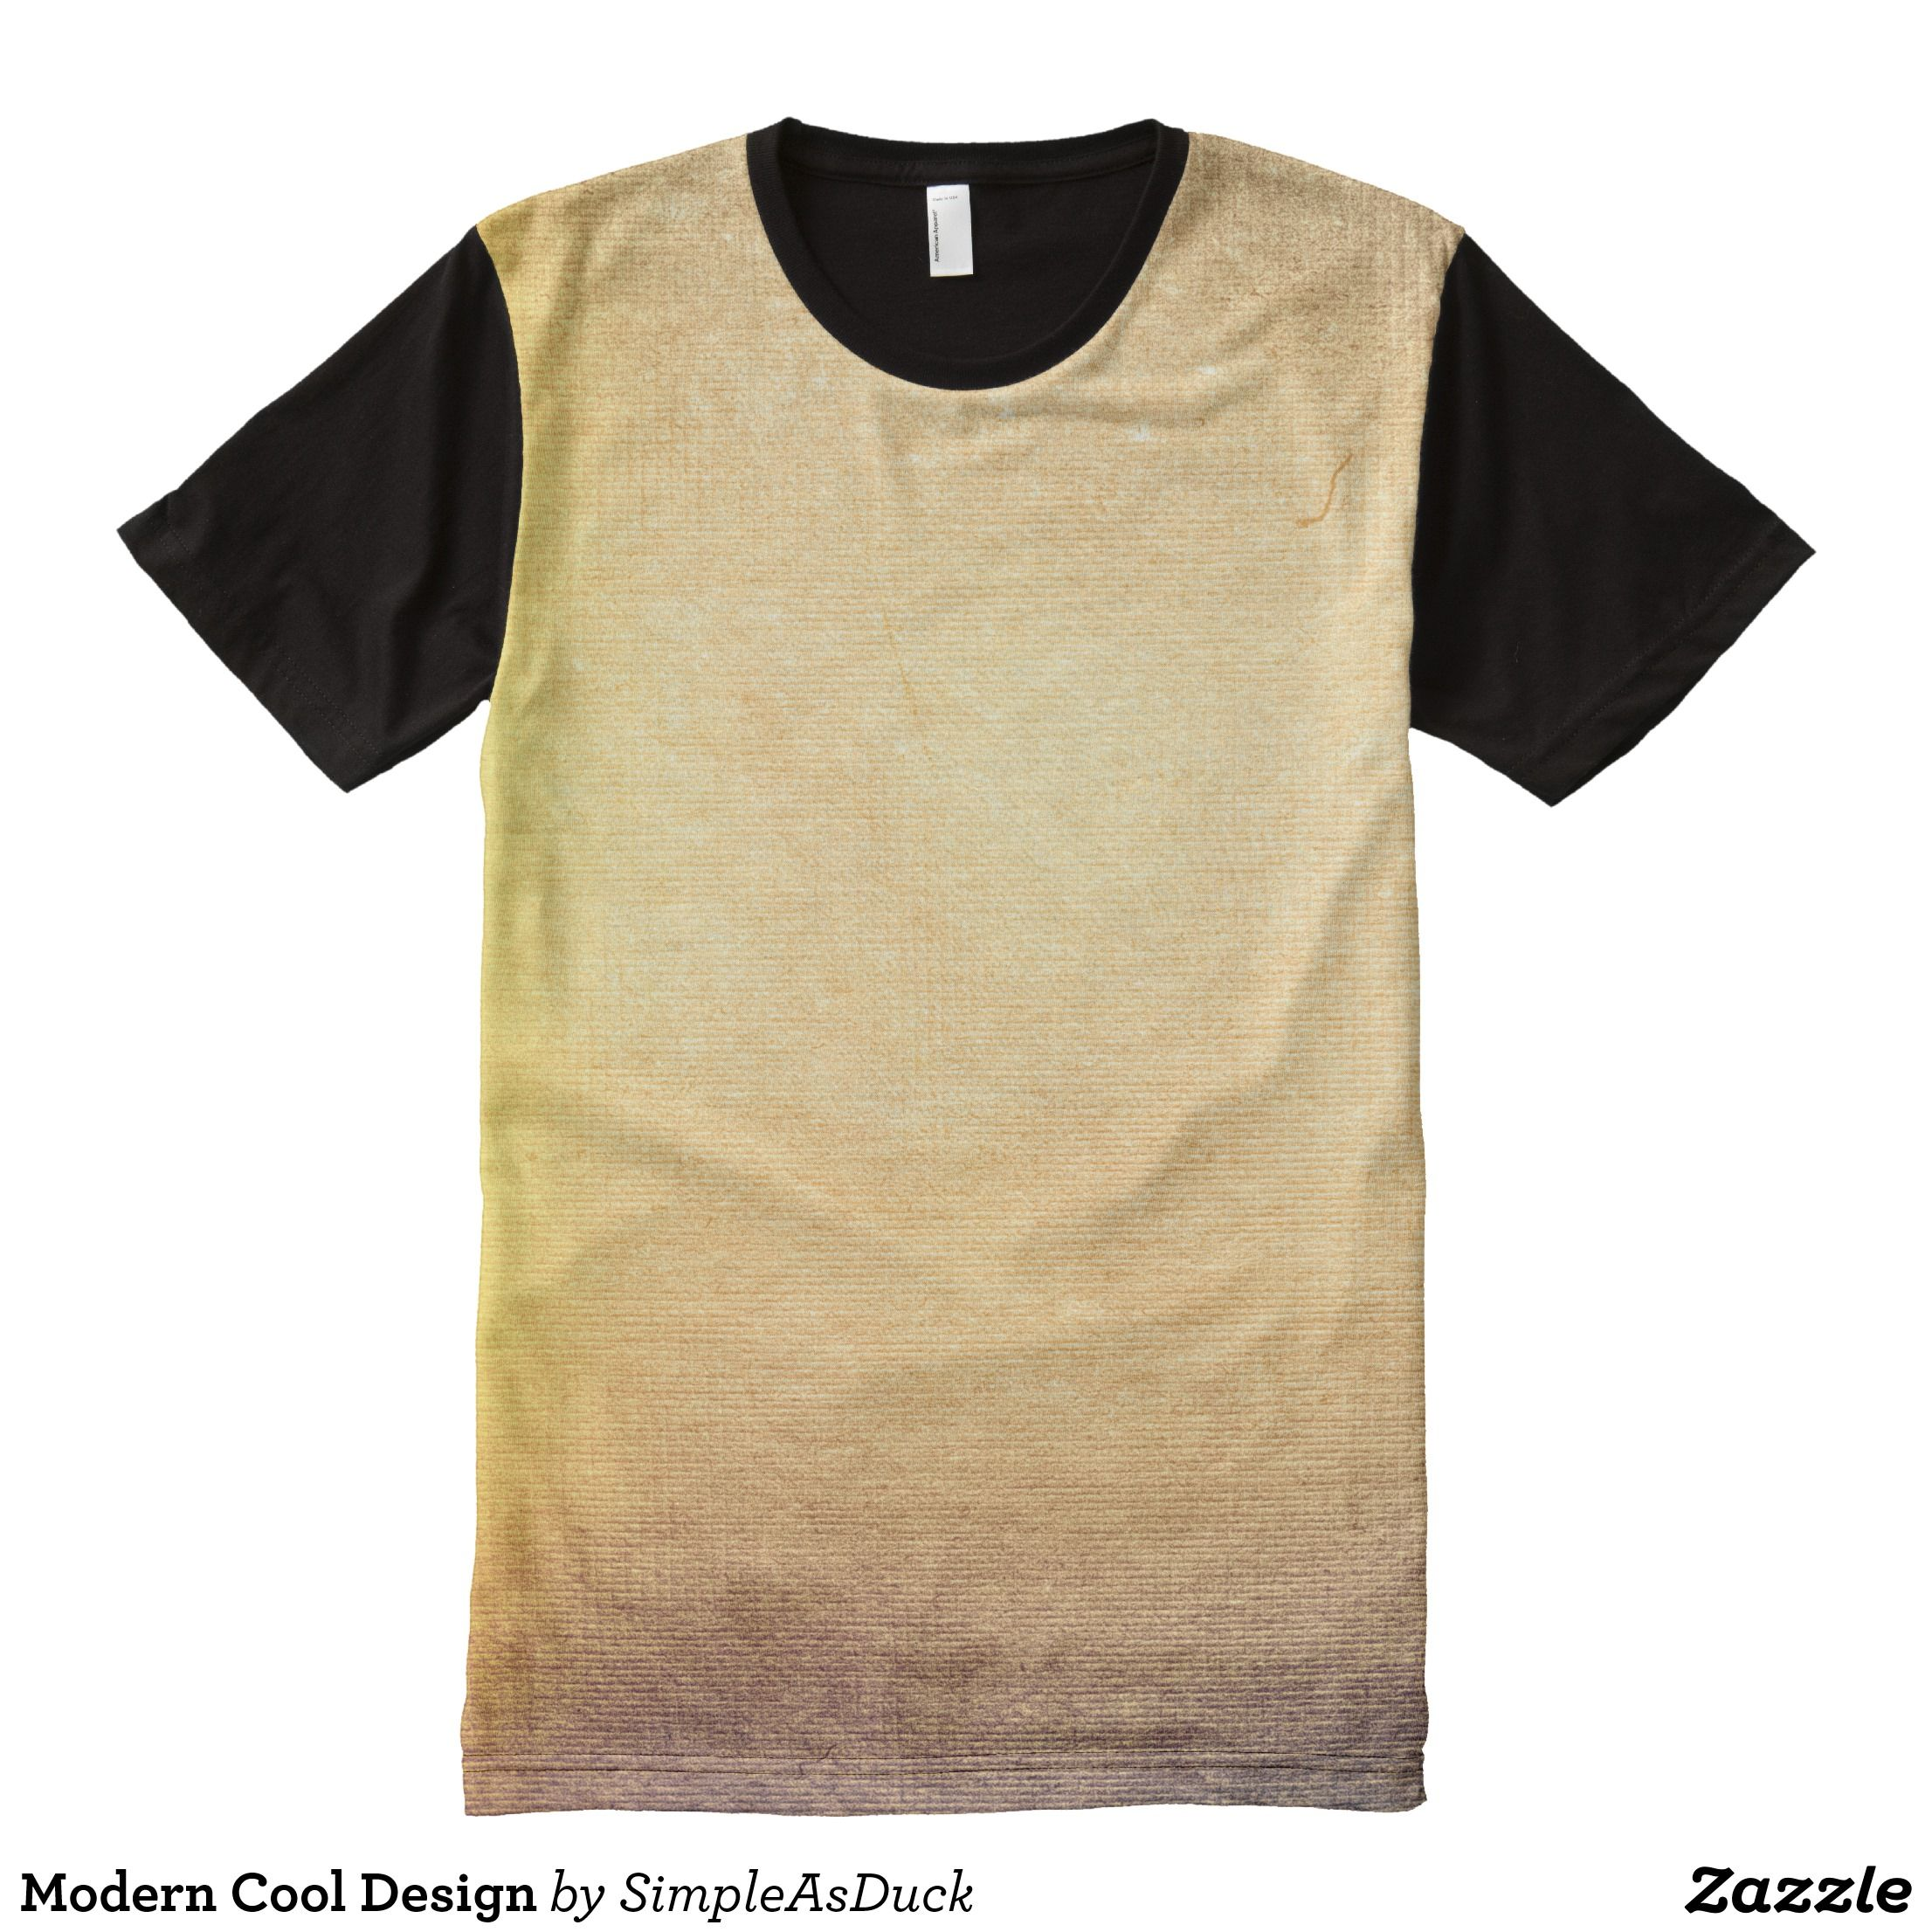 Modern Cool Design All-Over-Print T-Shirt - Visually Stunning Graphic T-Shirts By Talented Fashion Designers - #shirts #tshirts #print #mensfashion #apparel #shopping #bargain #sale #outfit #stylish #cool #graphicdesign #trendy #fashion #design #fashiondesign #designer #fashiondesigner #style